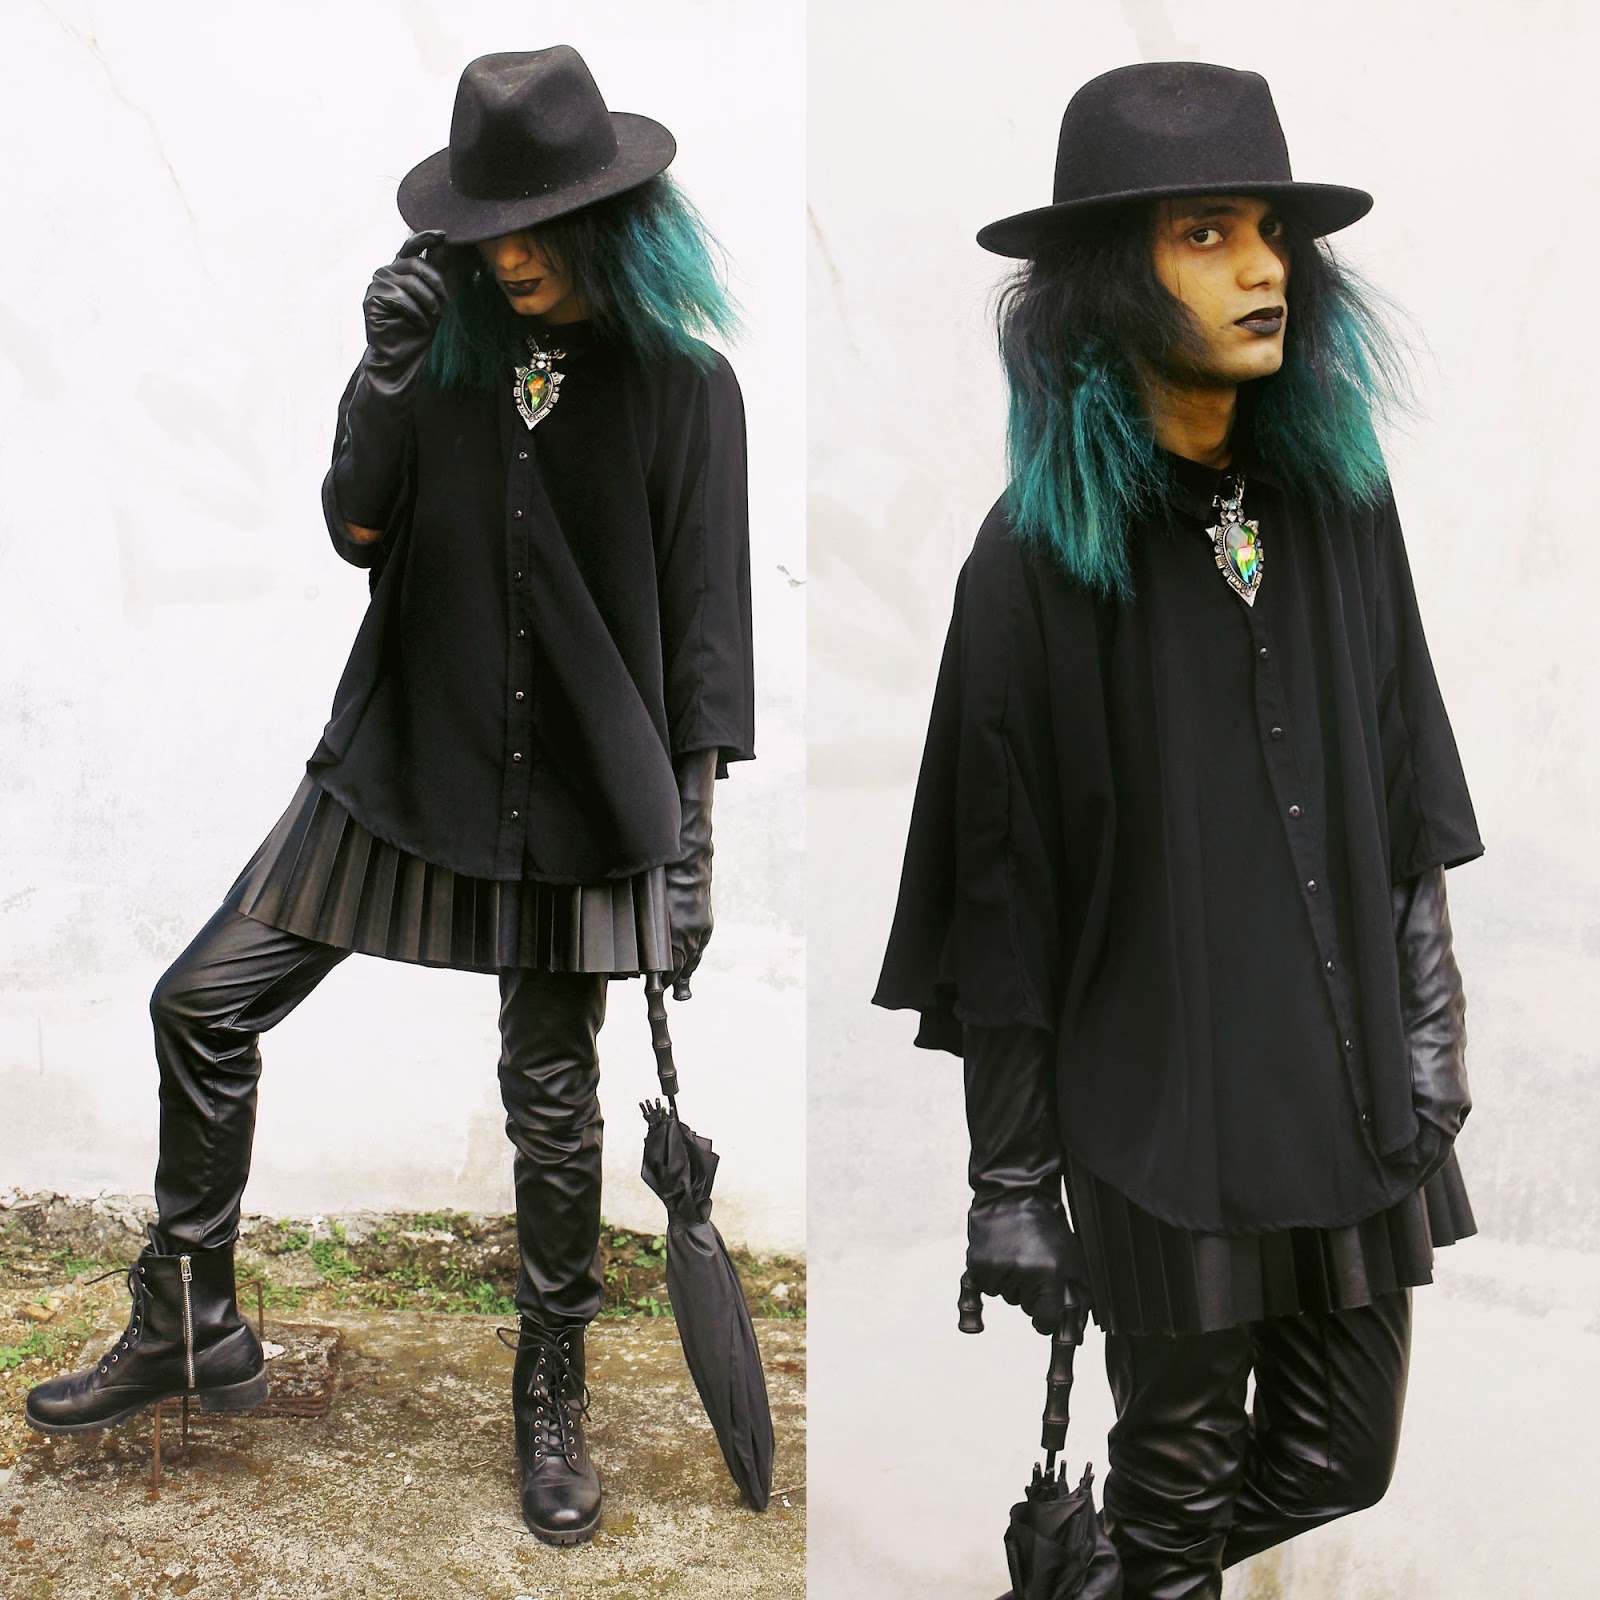 Mr. Rebel in Town: Modern Witch